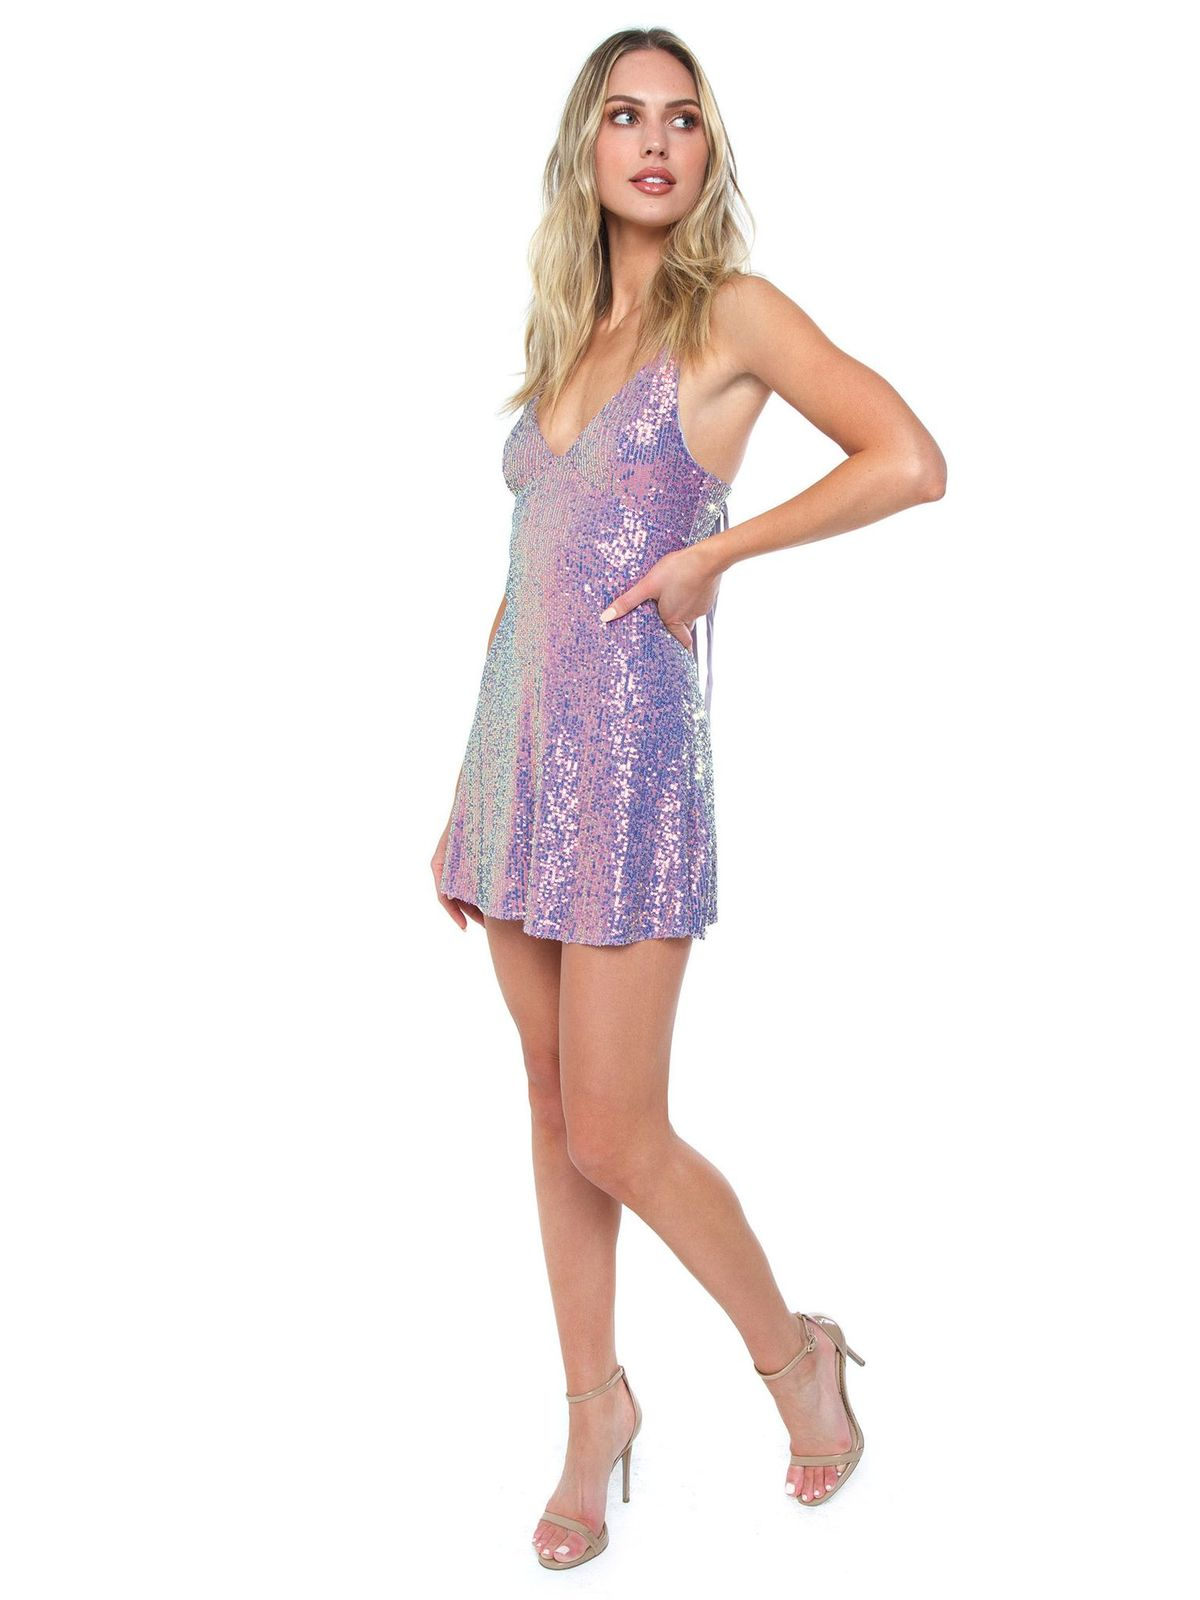 Woman wearing a dress rental from Free People called Gold Rush Slip